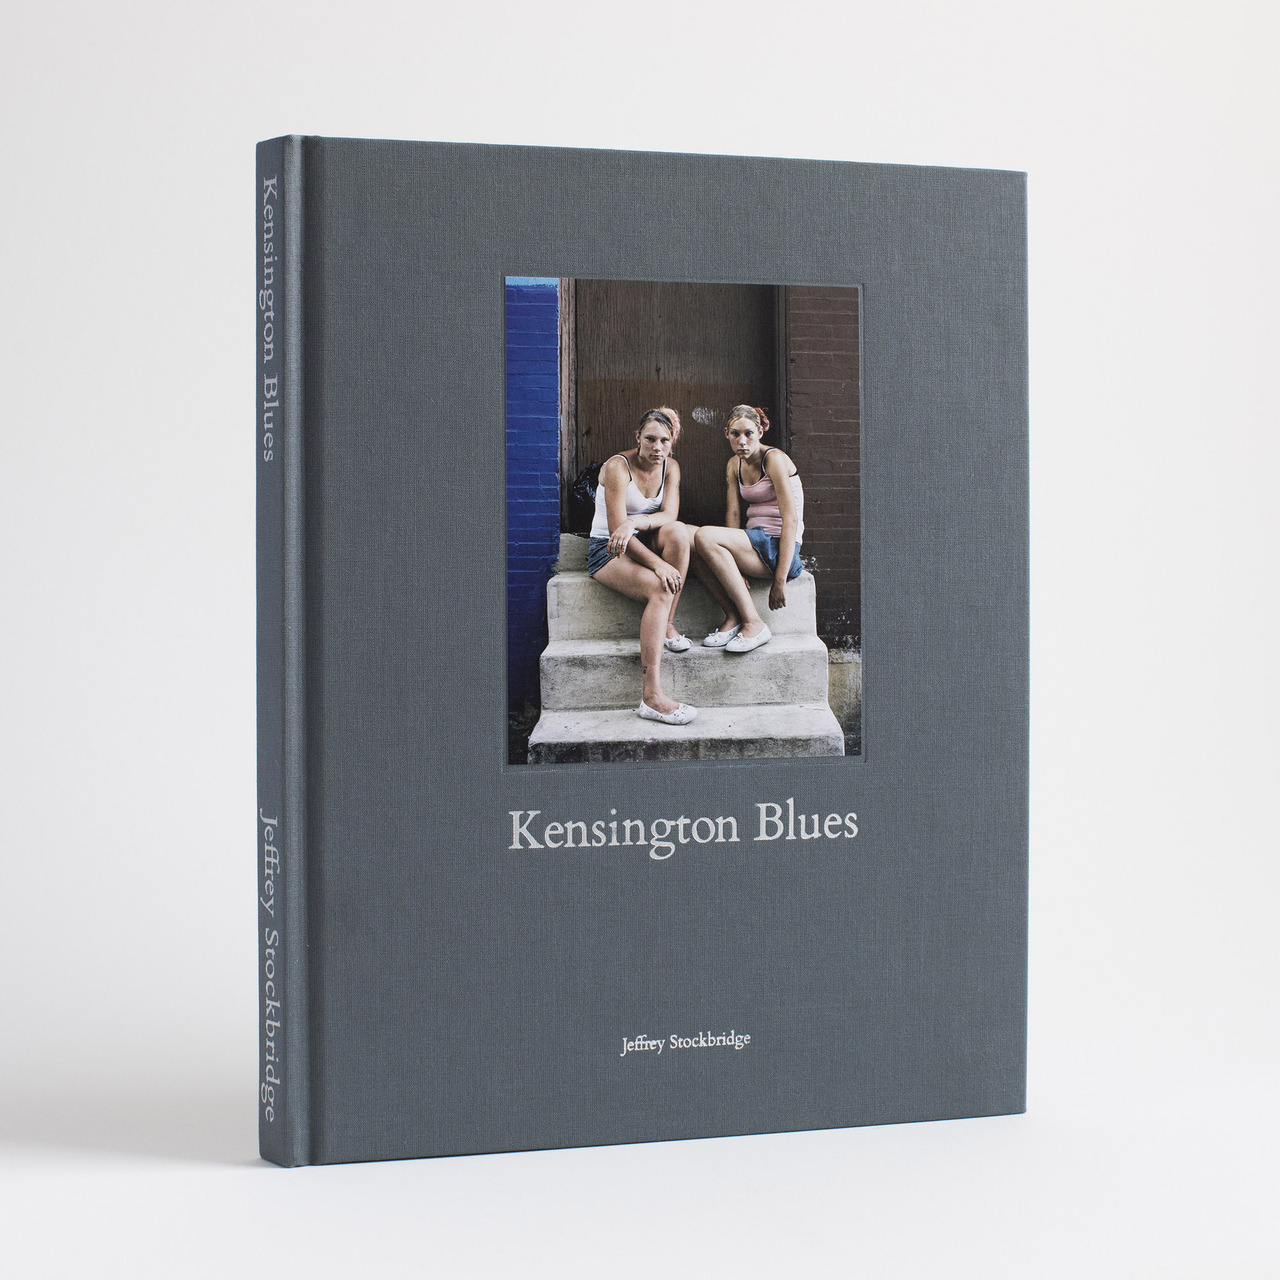 Kensington blues book jeffrey stockbridge 02